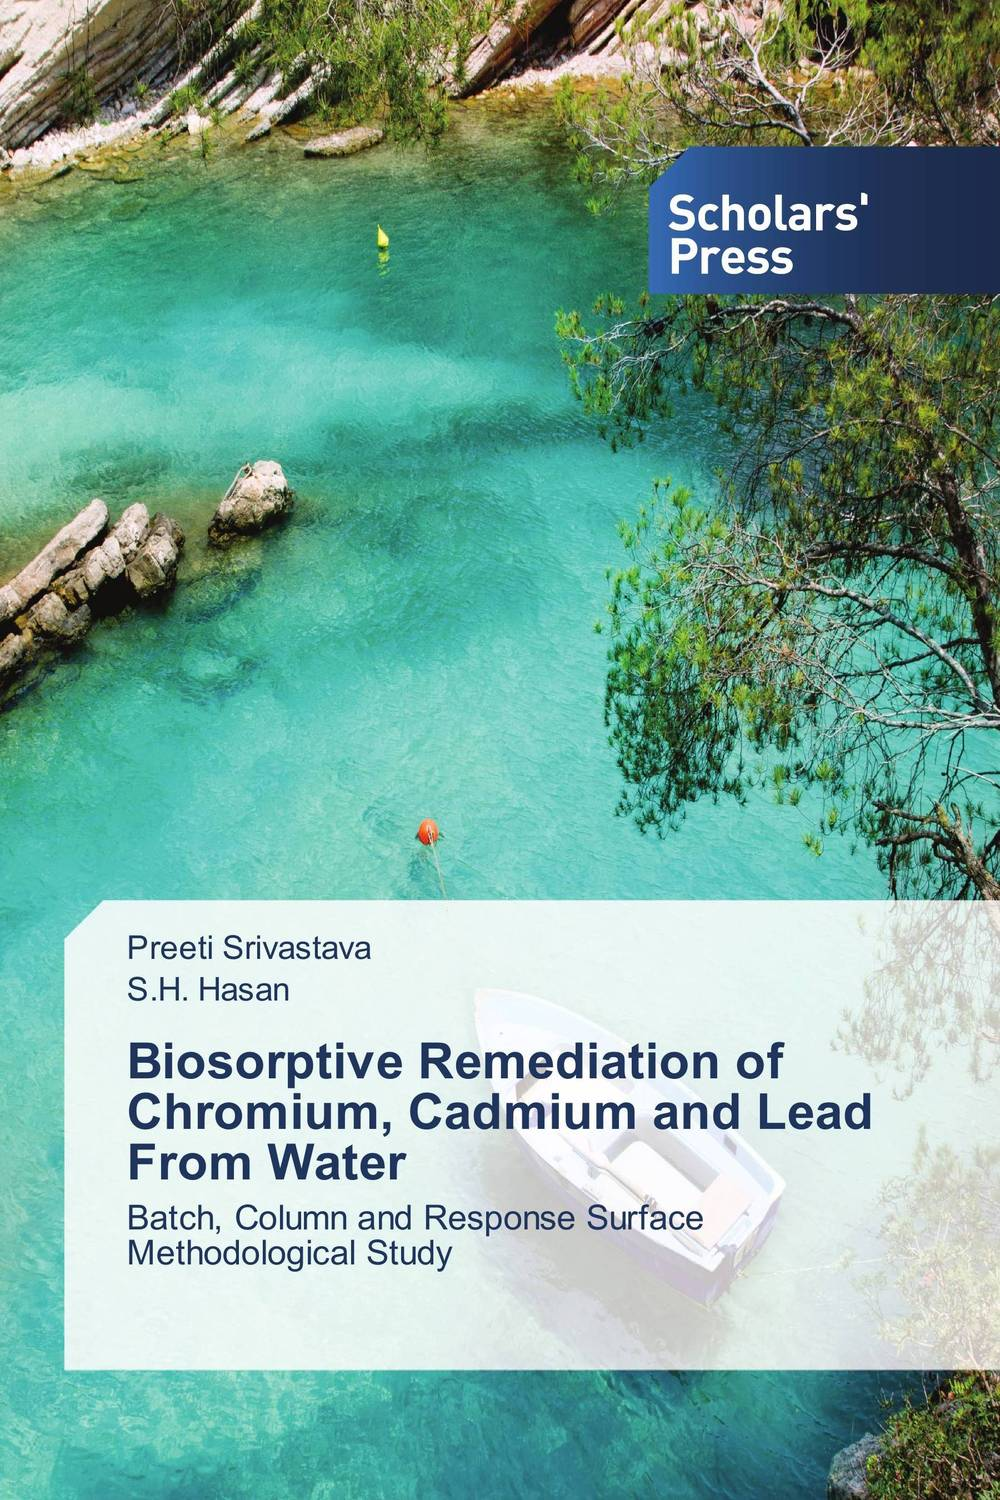 Biosorptive Remediation of Chromium, Cadmium and Lead From Water recovery of metals from sludges and wastewaters